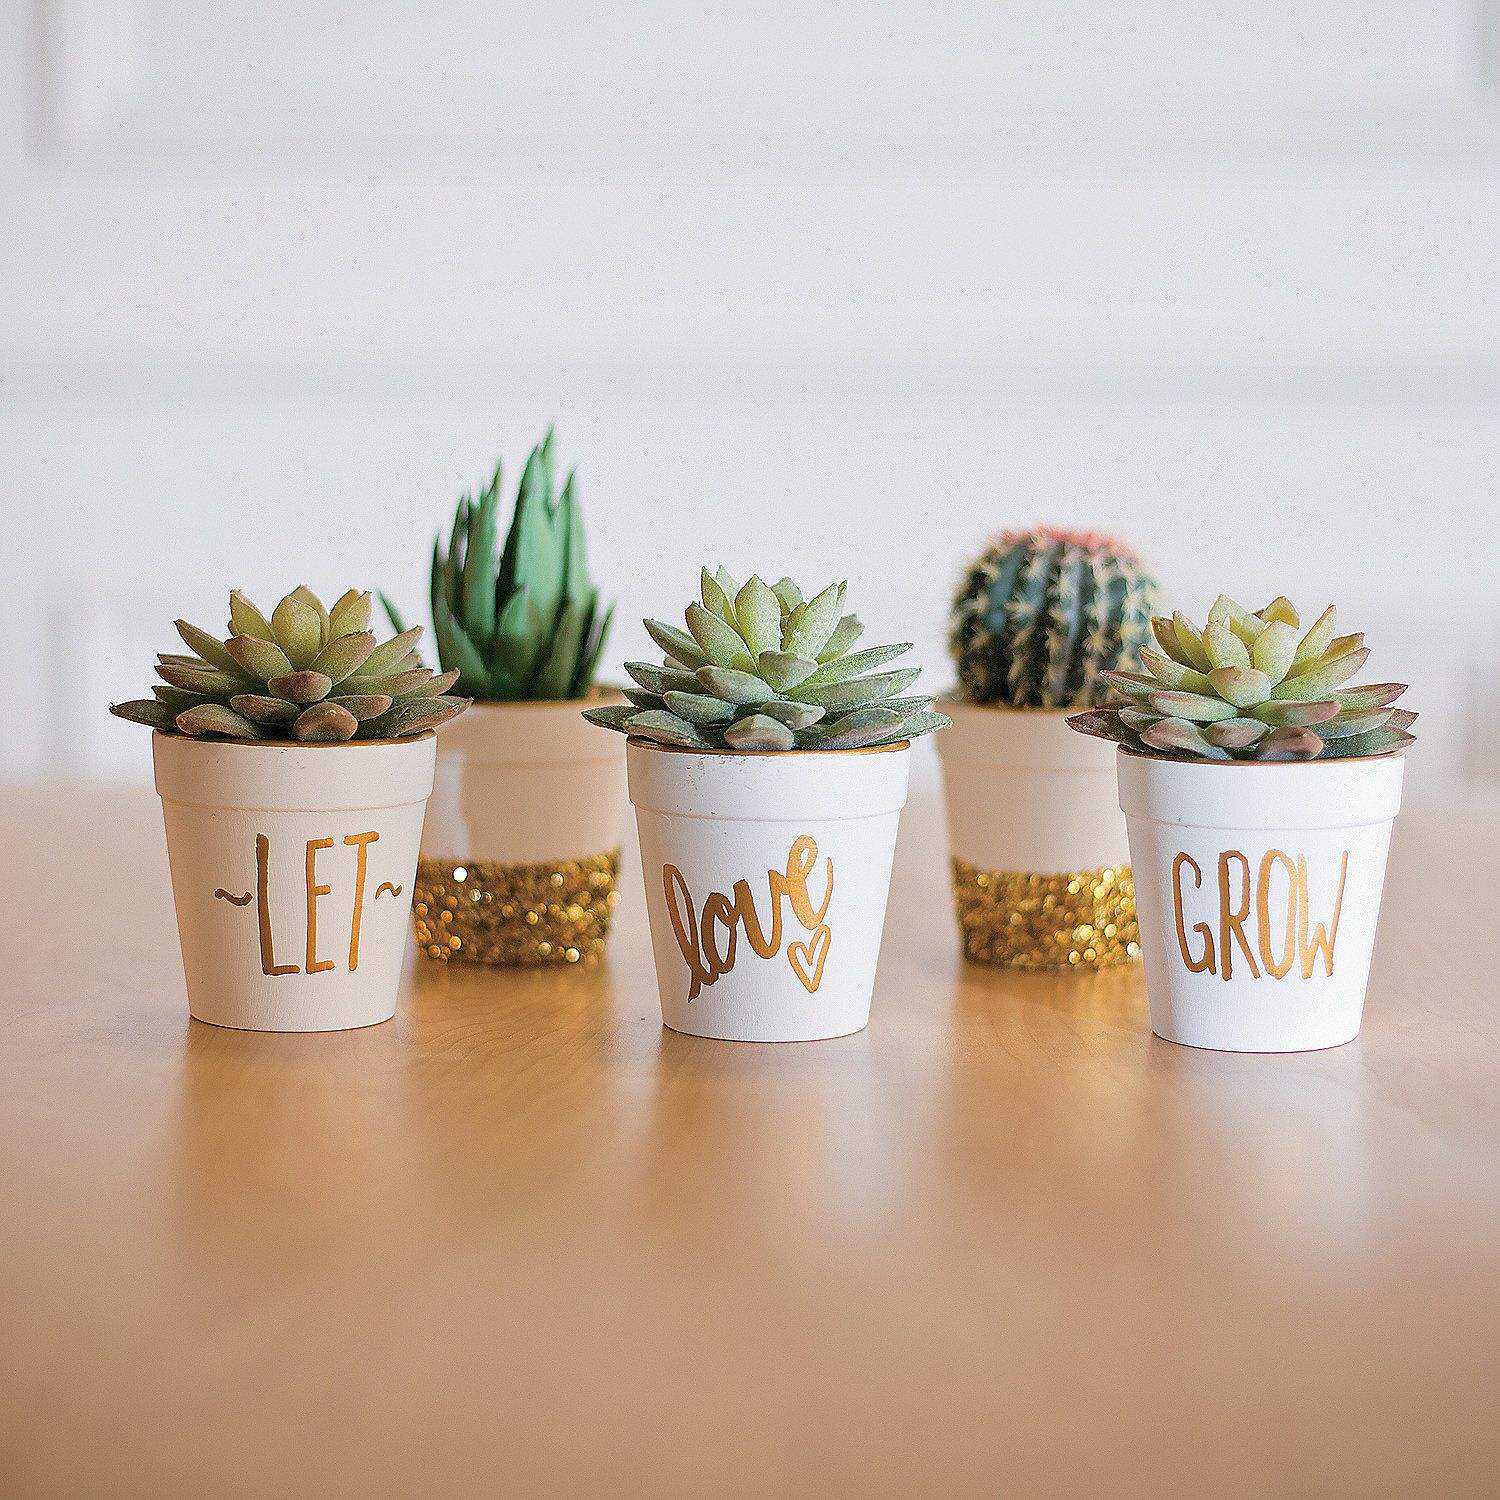 37 Quickest Diy Gifts You Can Make: Let Love Grow Flowerpots Idea